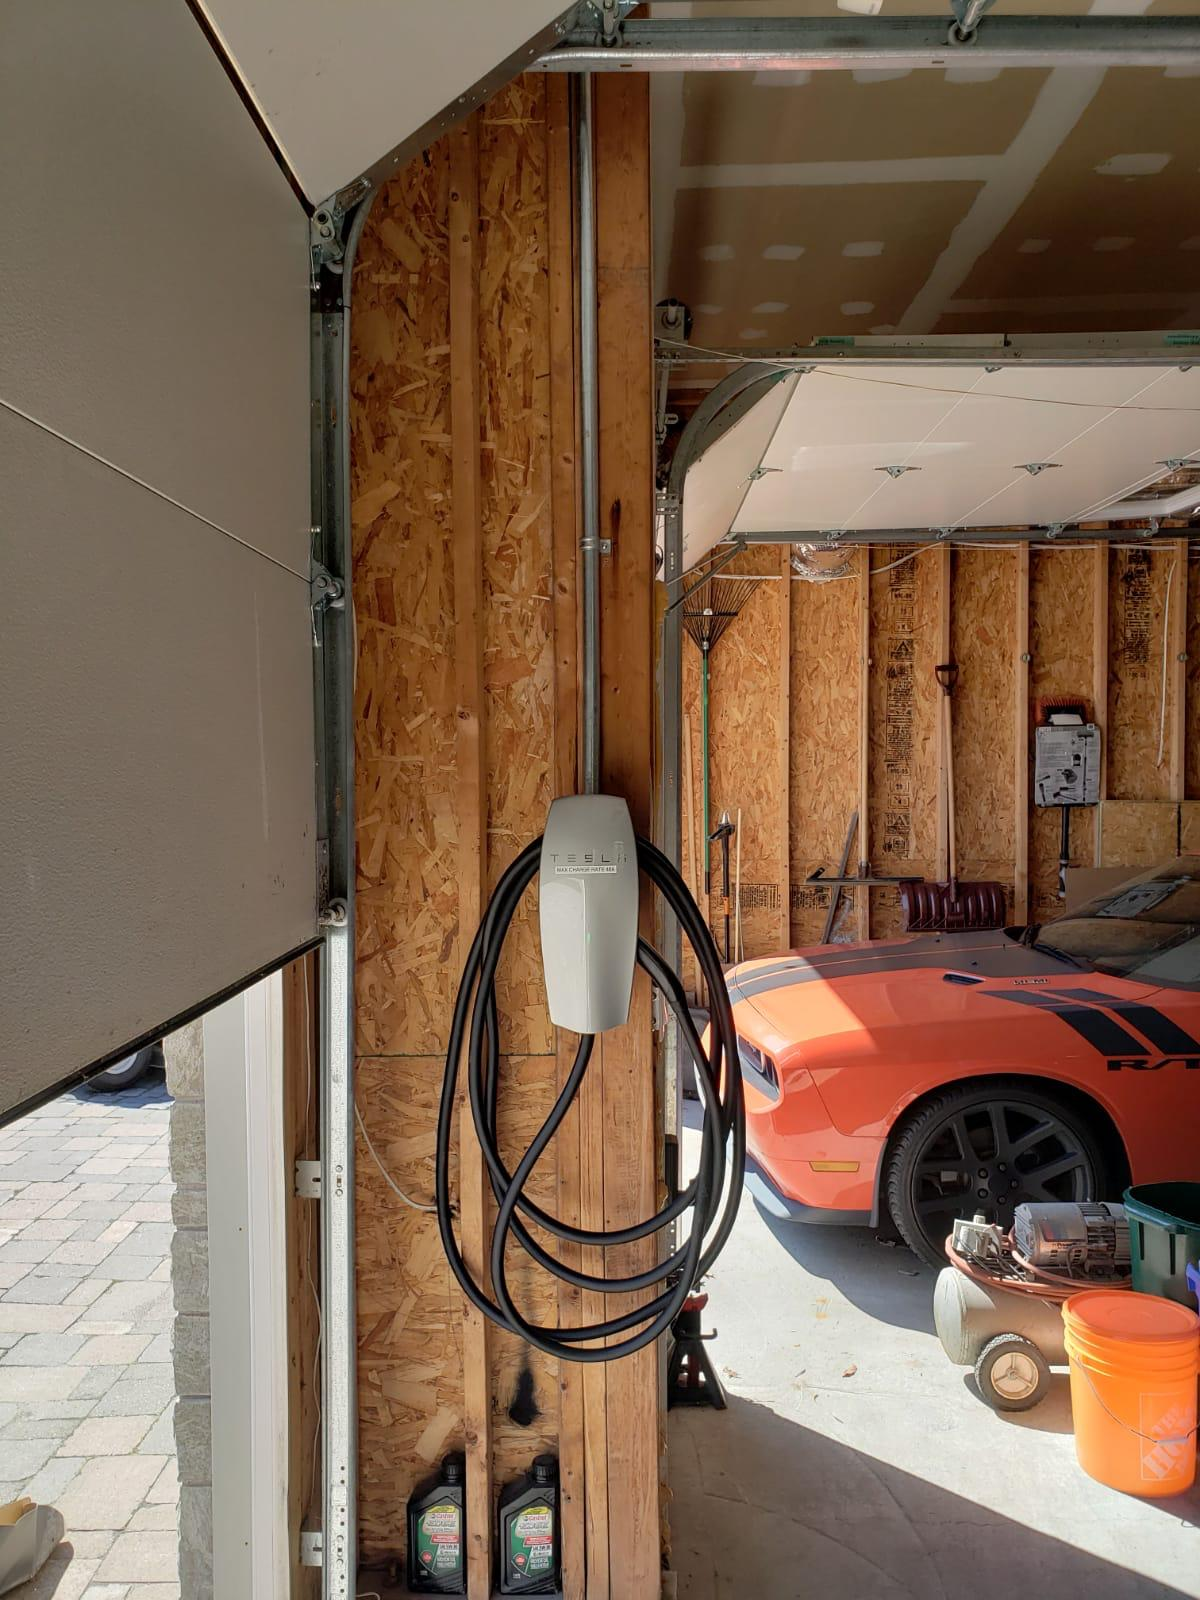 Residential EV Charging Station Project pictures in ontario